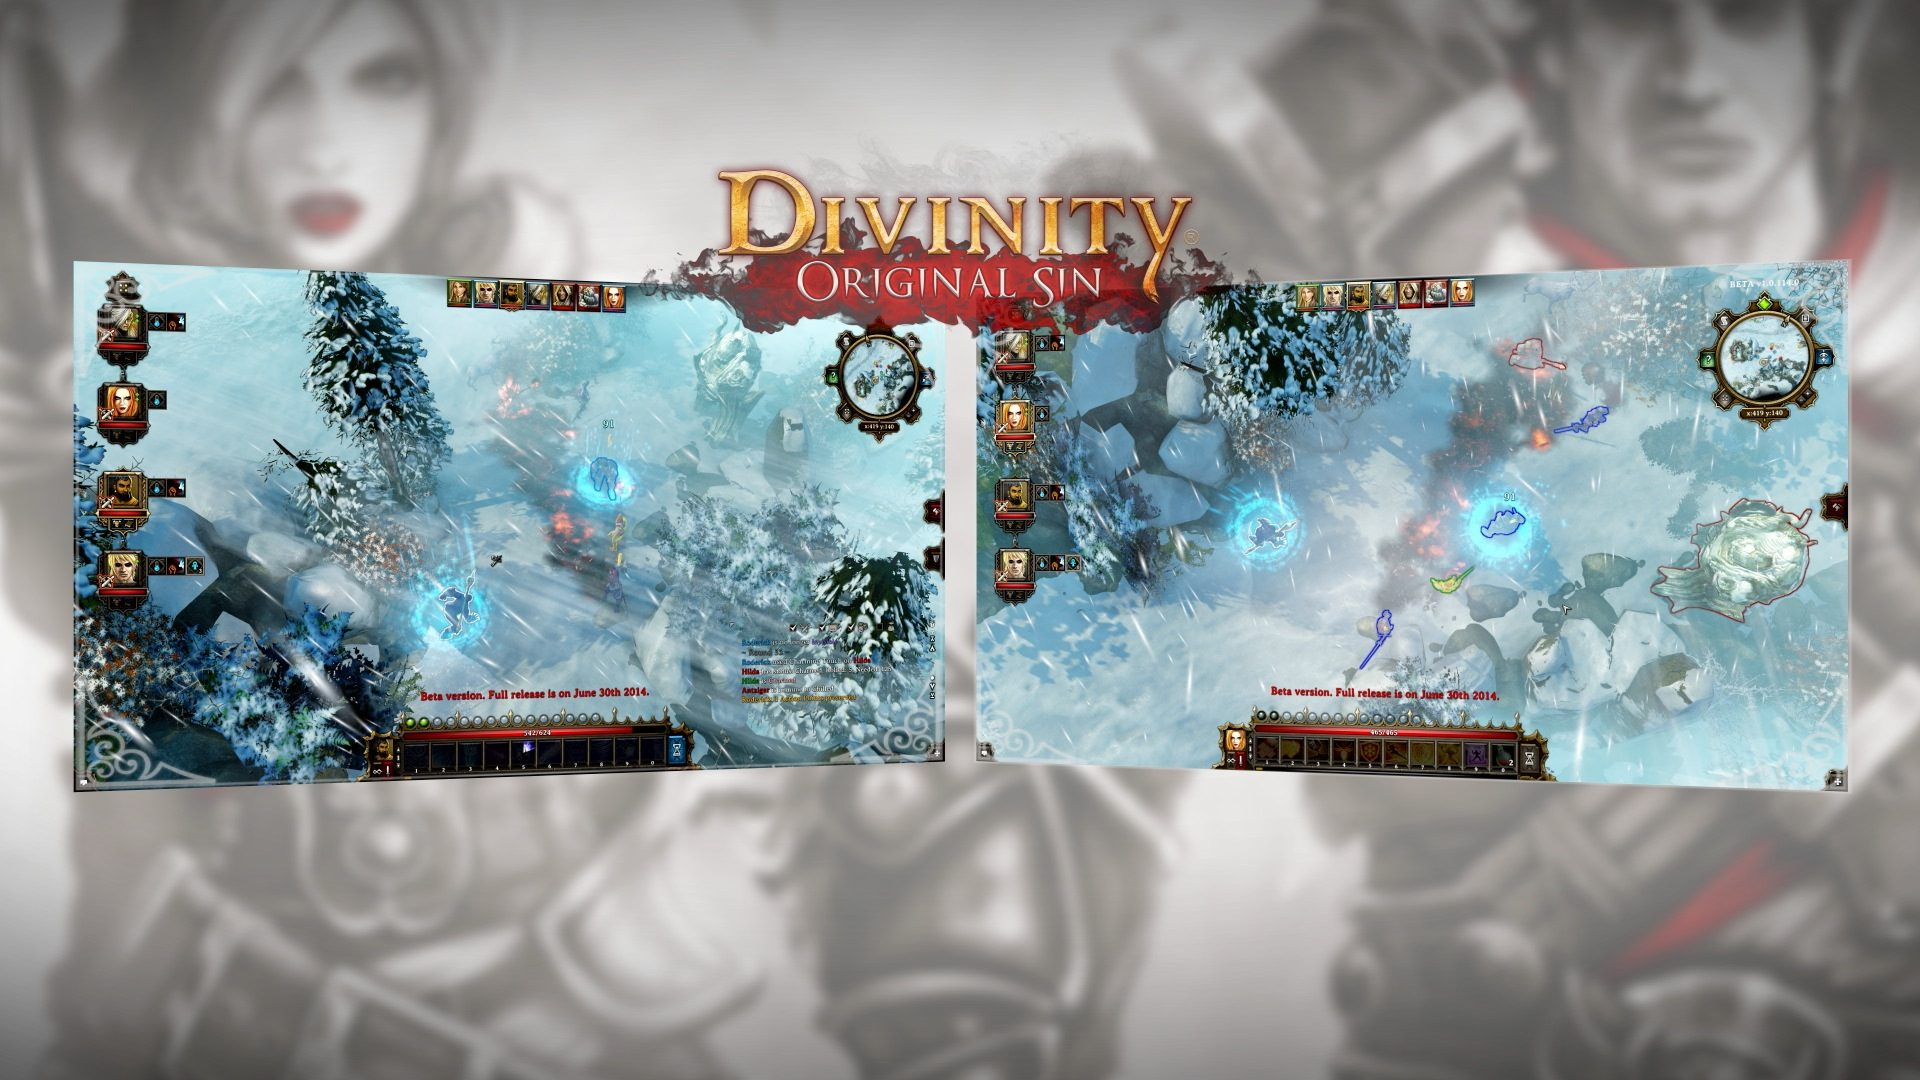 Cow Simulator 2014 Releases New Trailer Featuring Divinity